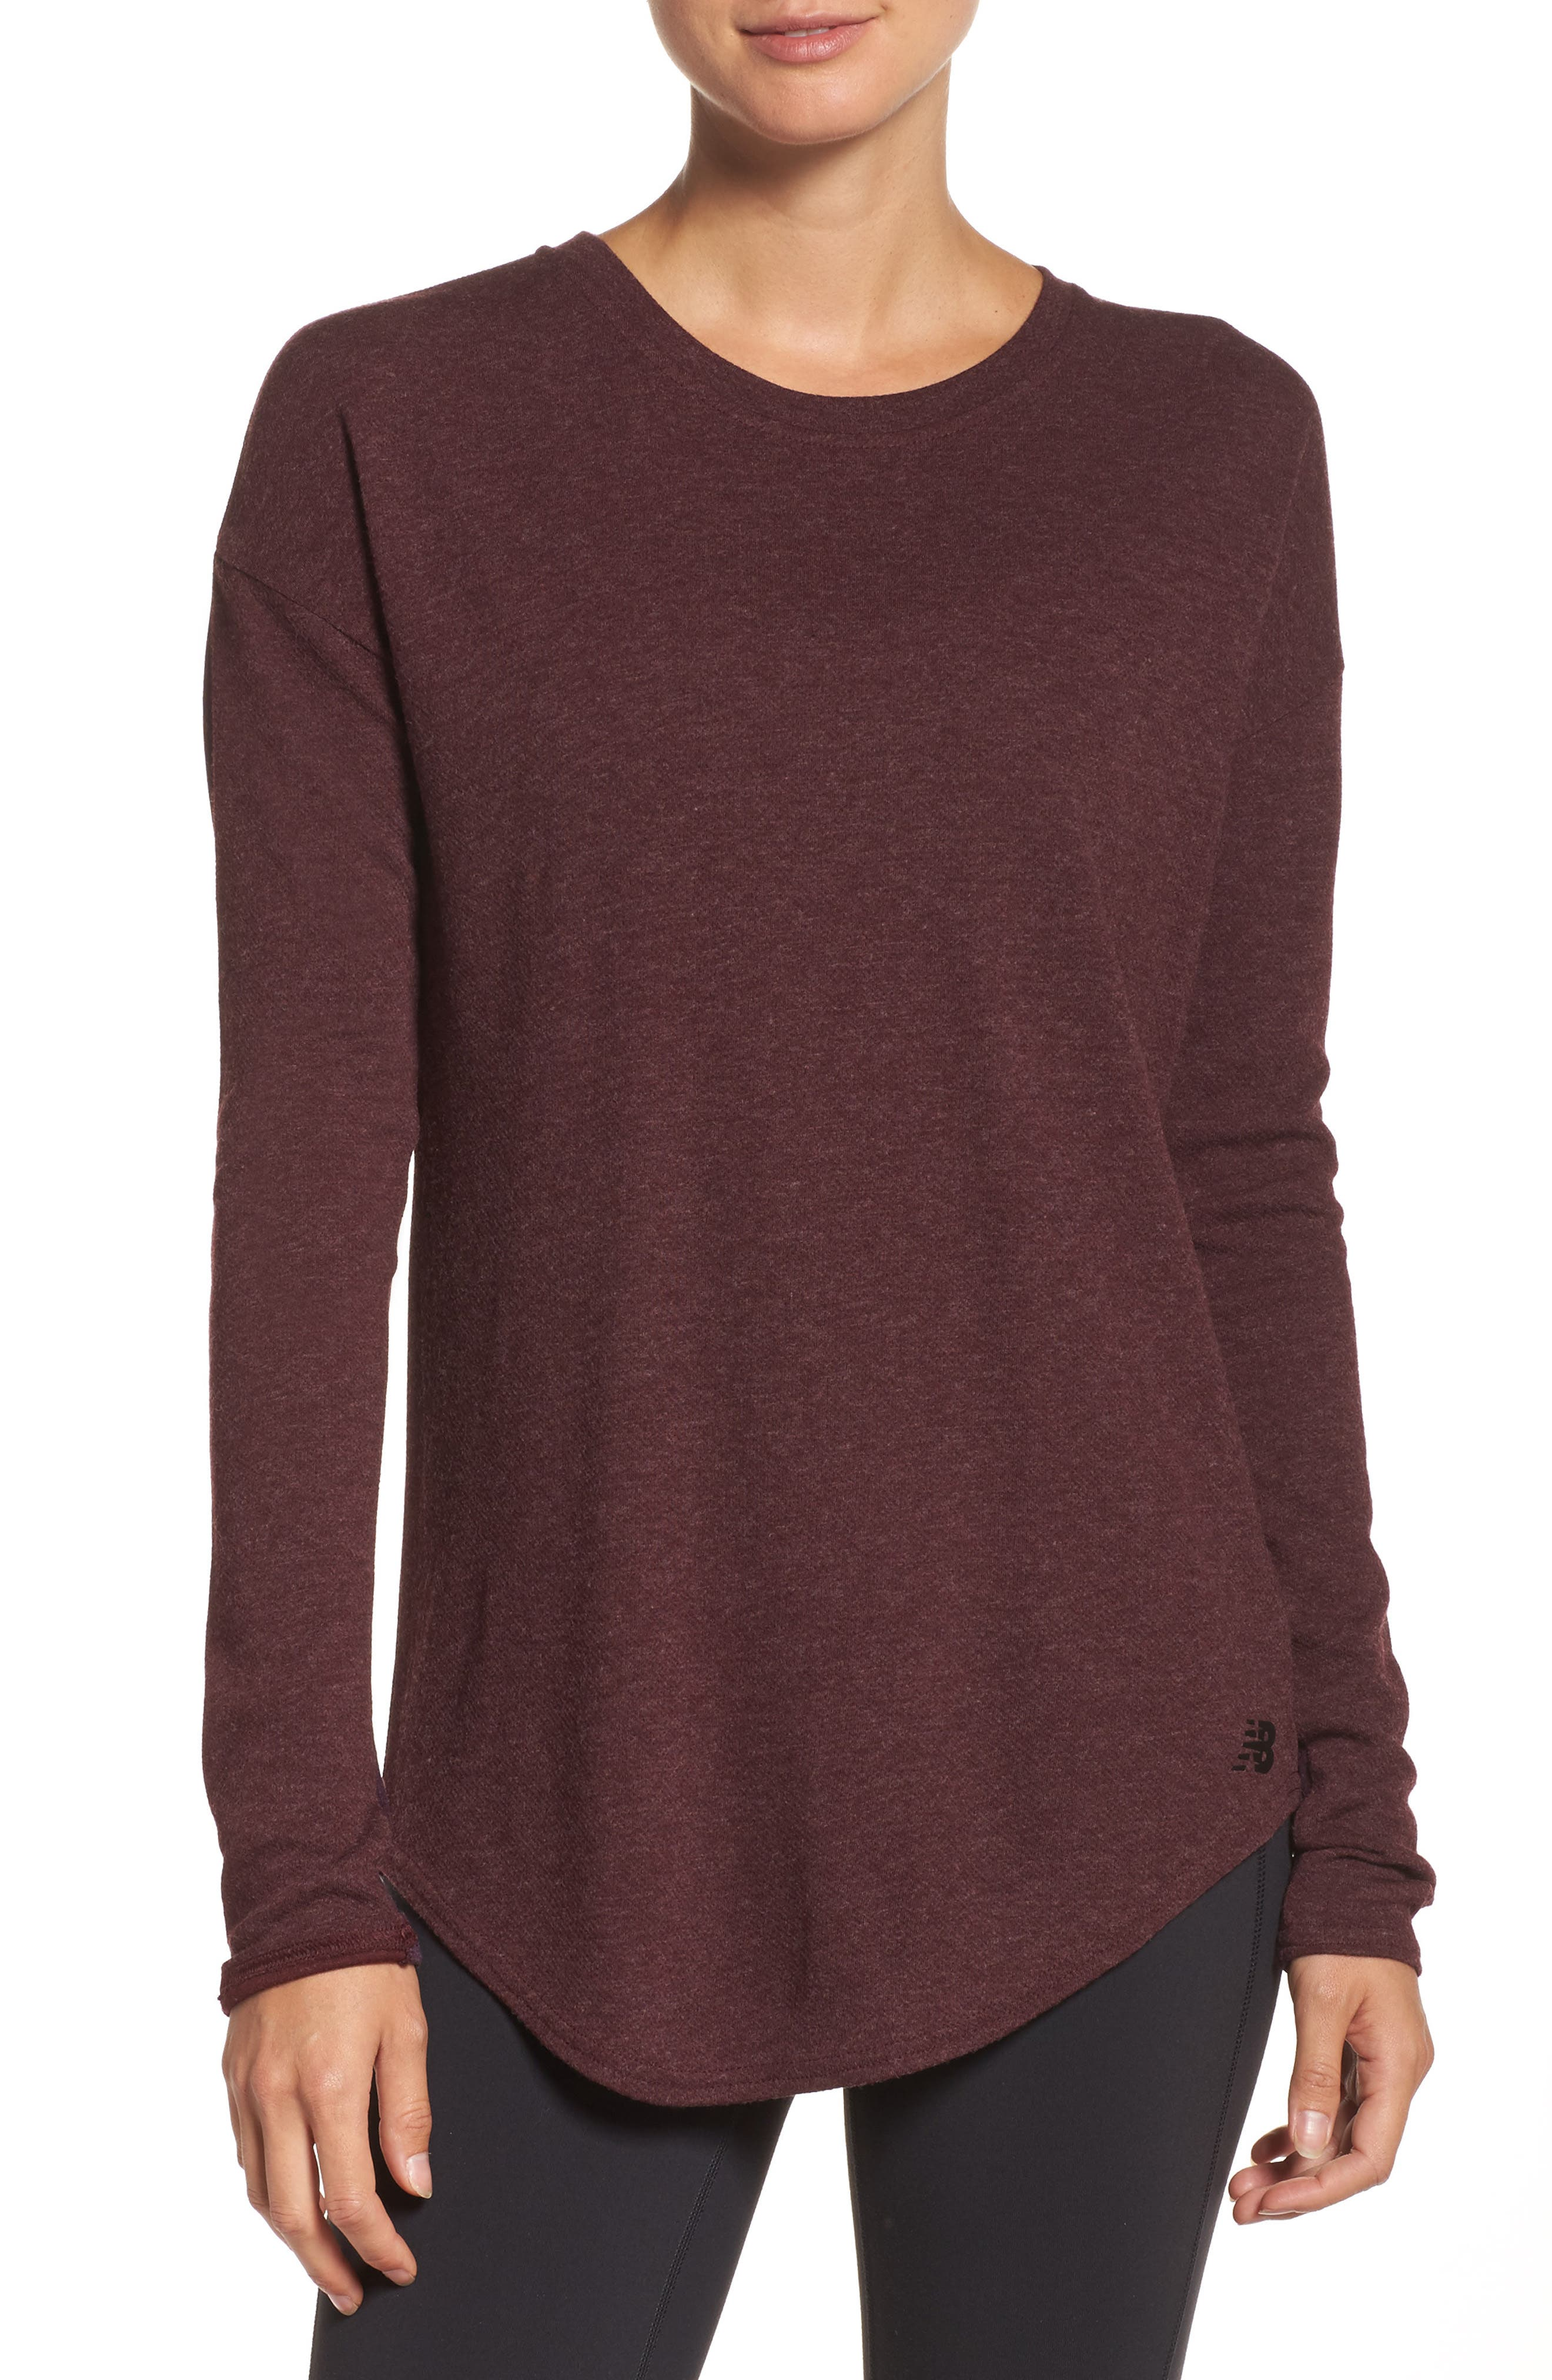 247 Luxe Long Sleeve Tee,                         Main,                         color, Ctc